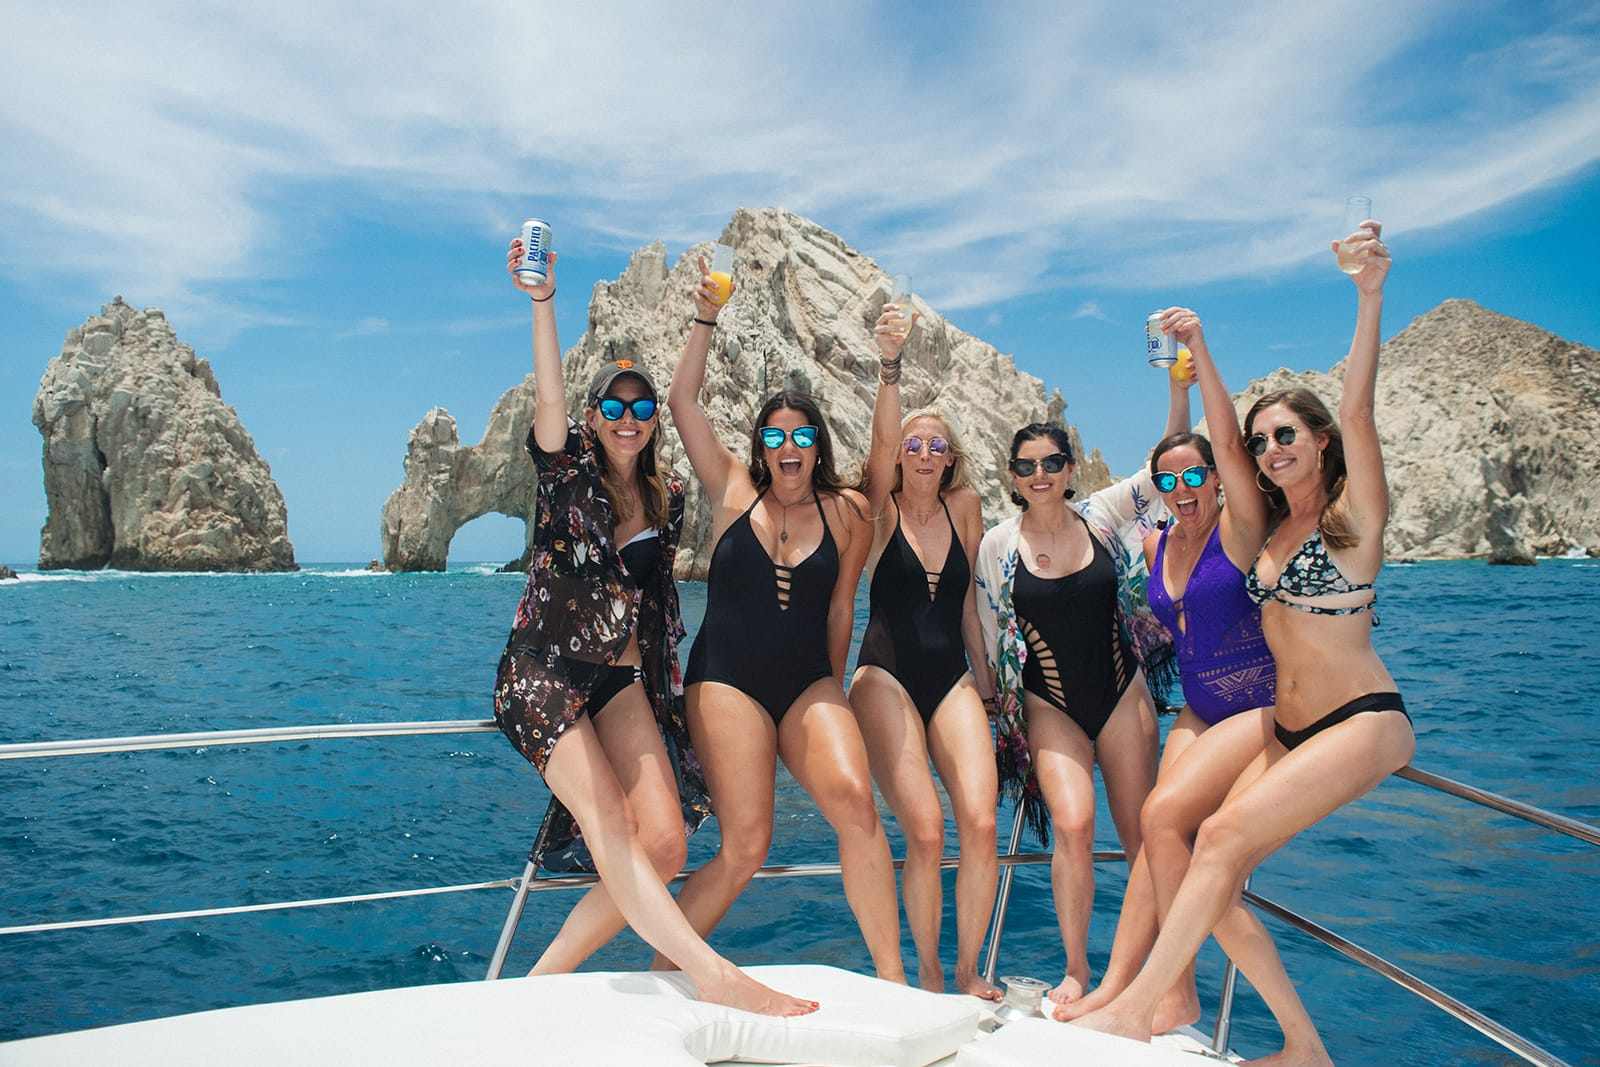 match & flirt with singles in san lucas 7-night mexican riviera singles cruise april 24 from los angeles are you 7pm cabo san lucas i will share a cabin with a friend or use the match program.